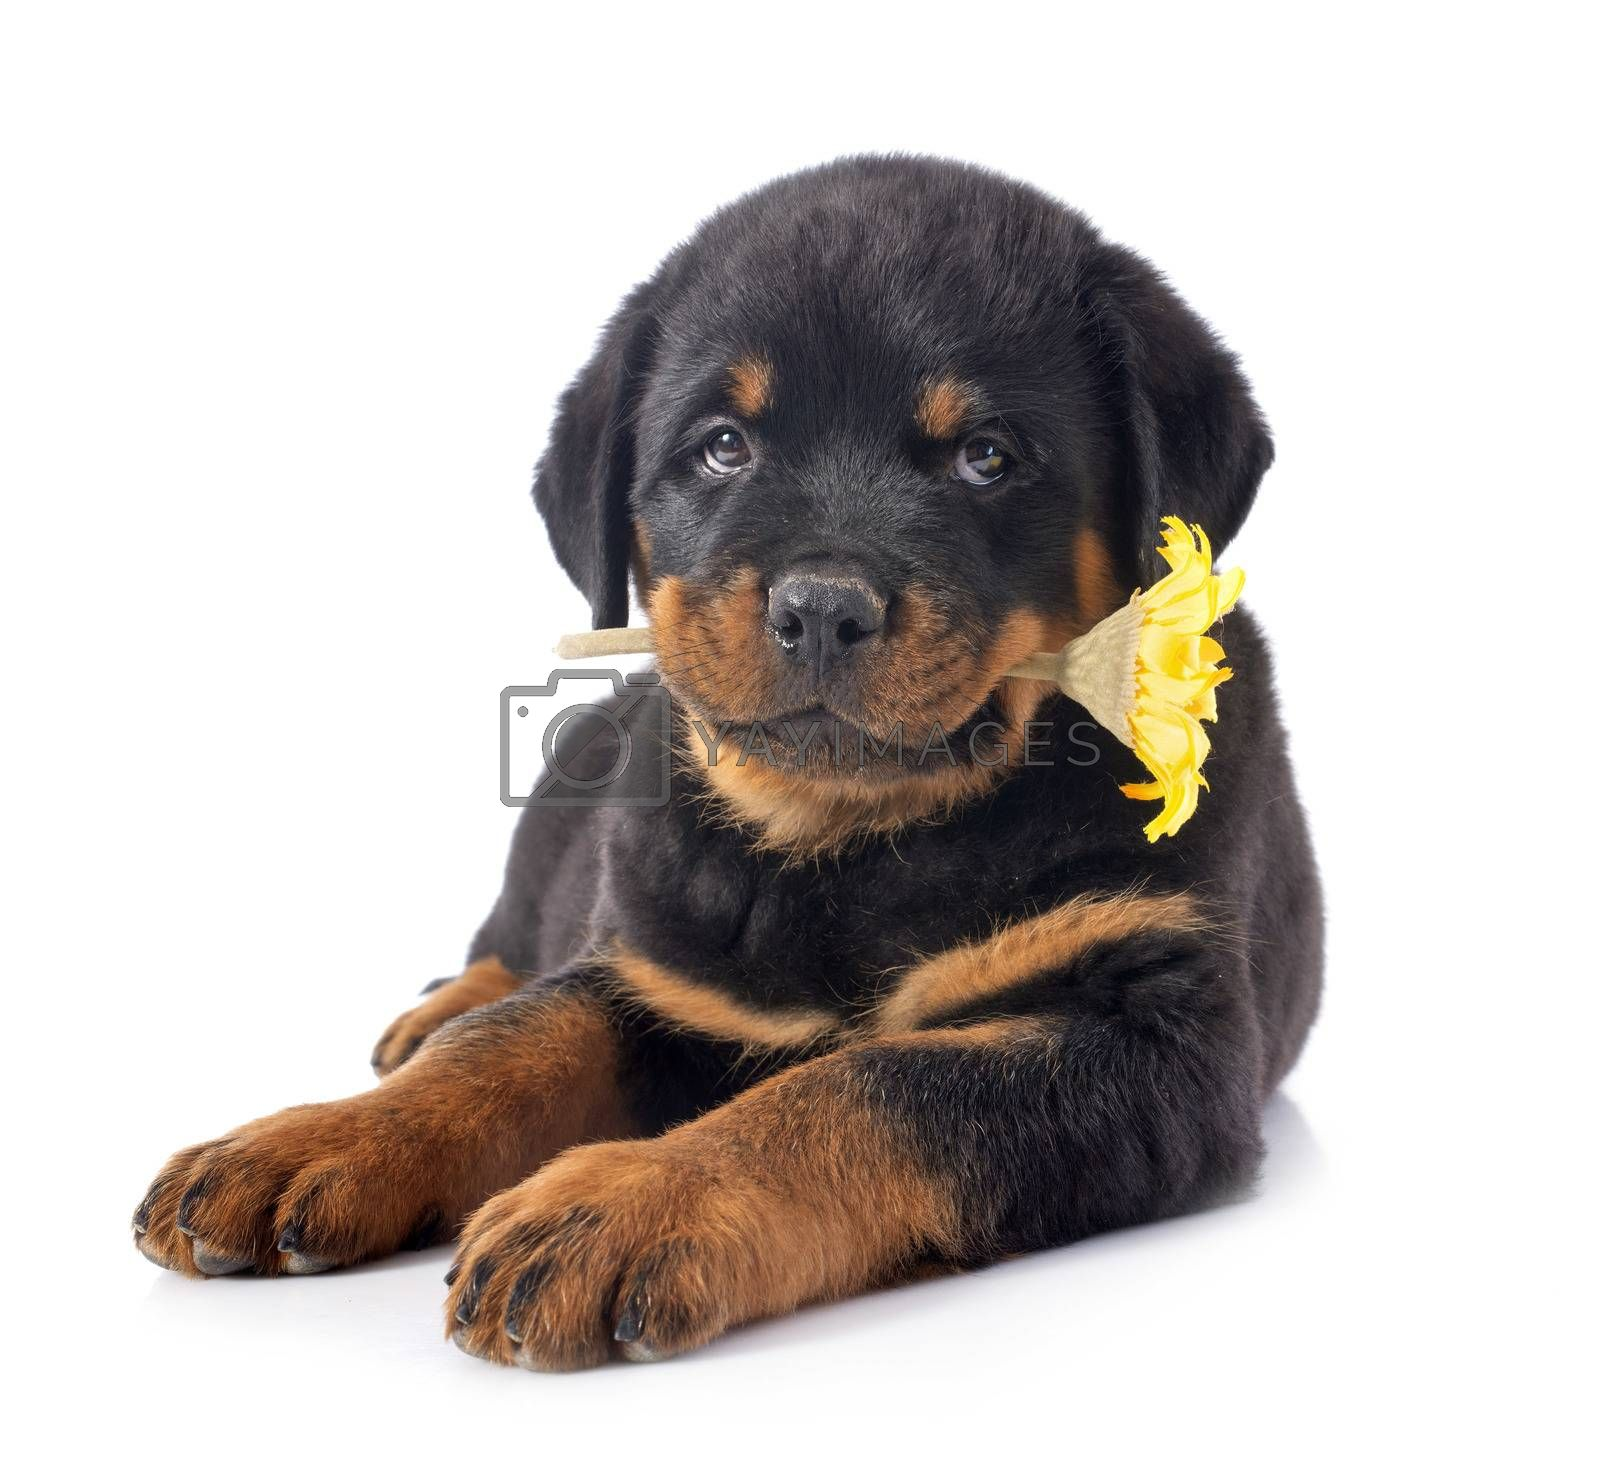 portrait of a purebred puppy rottweiler in front of white background